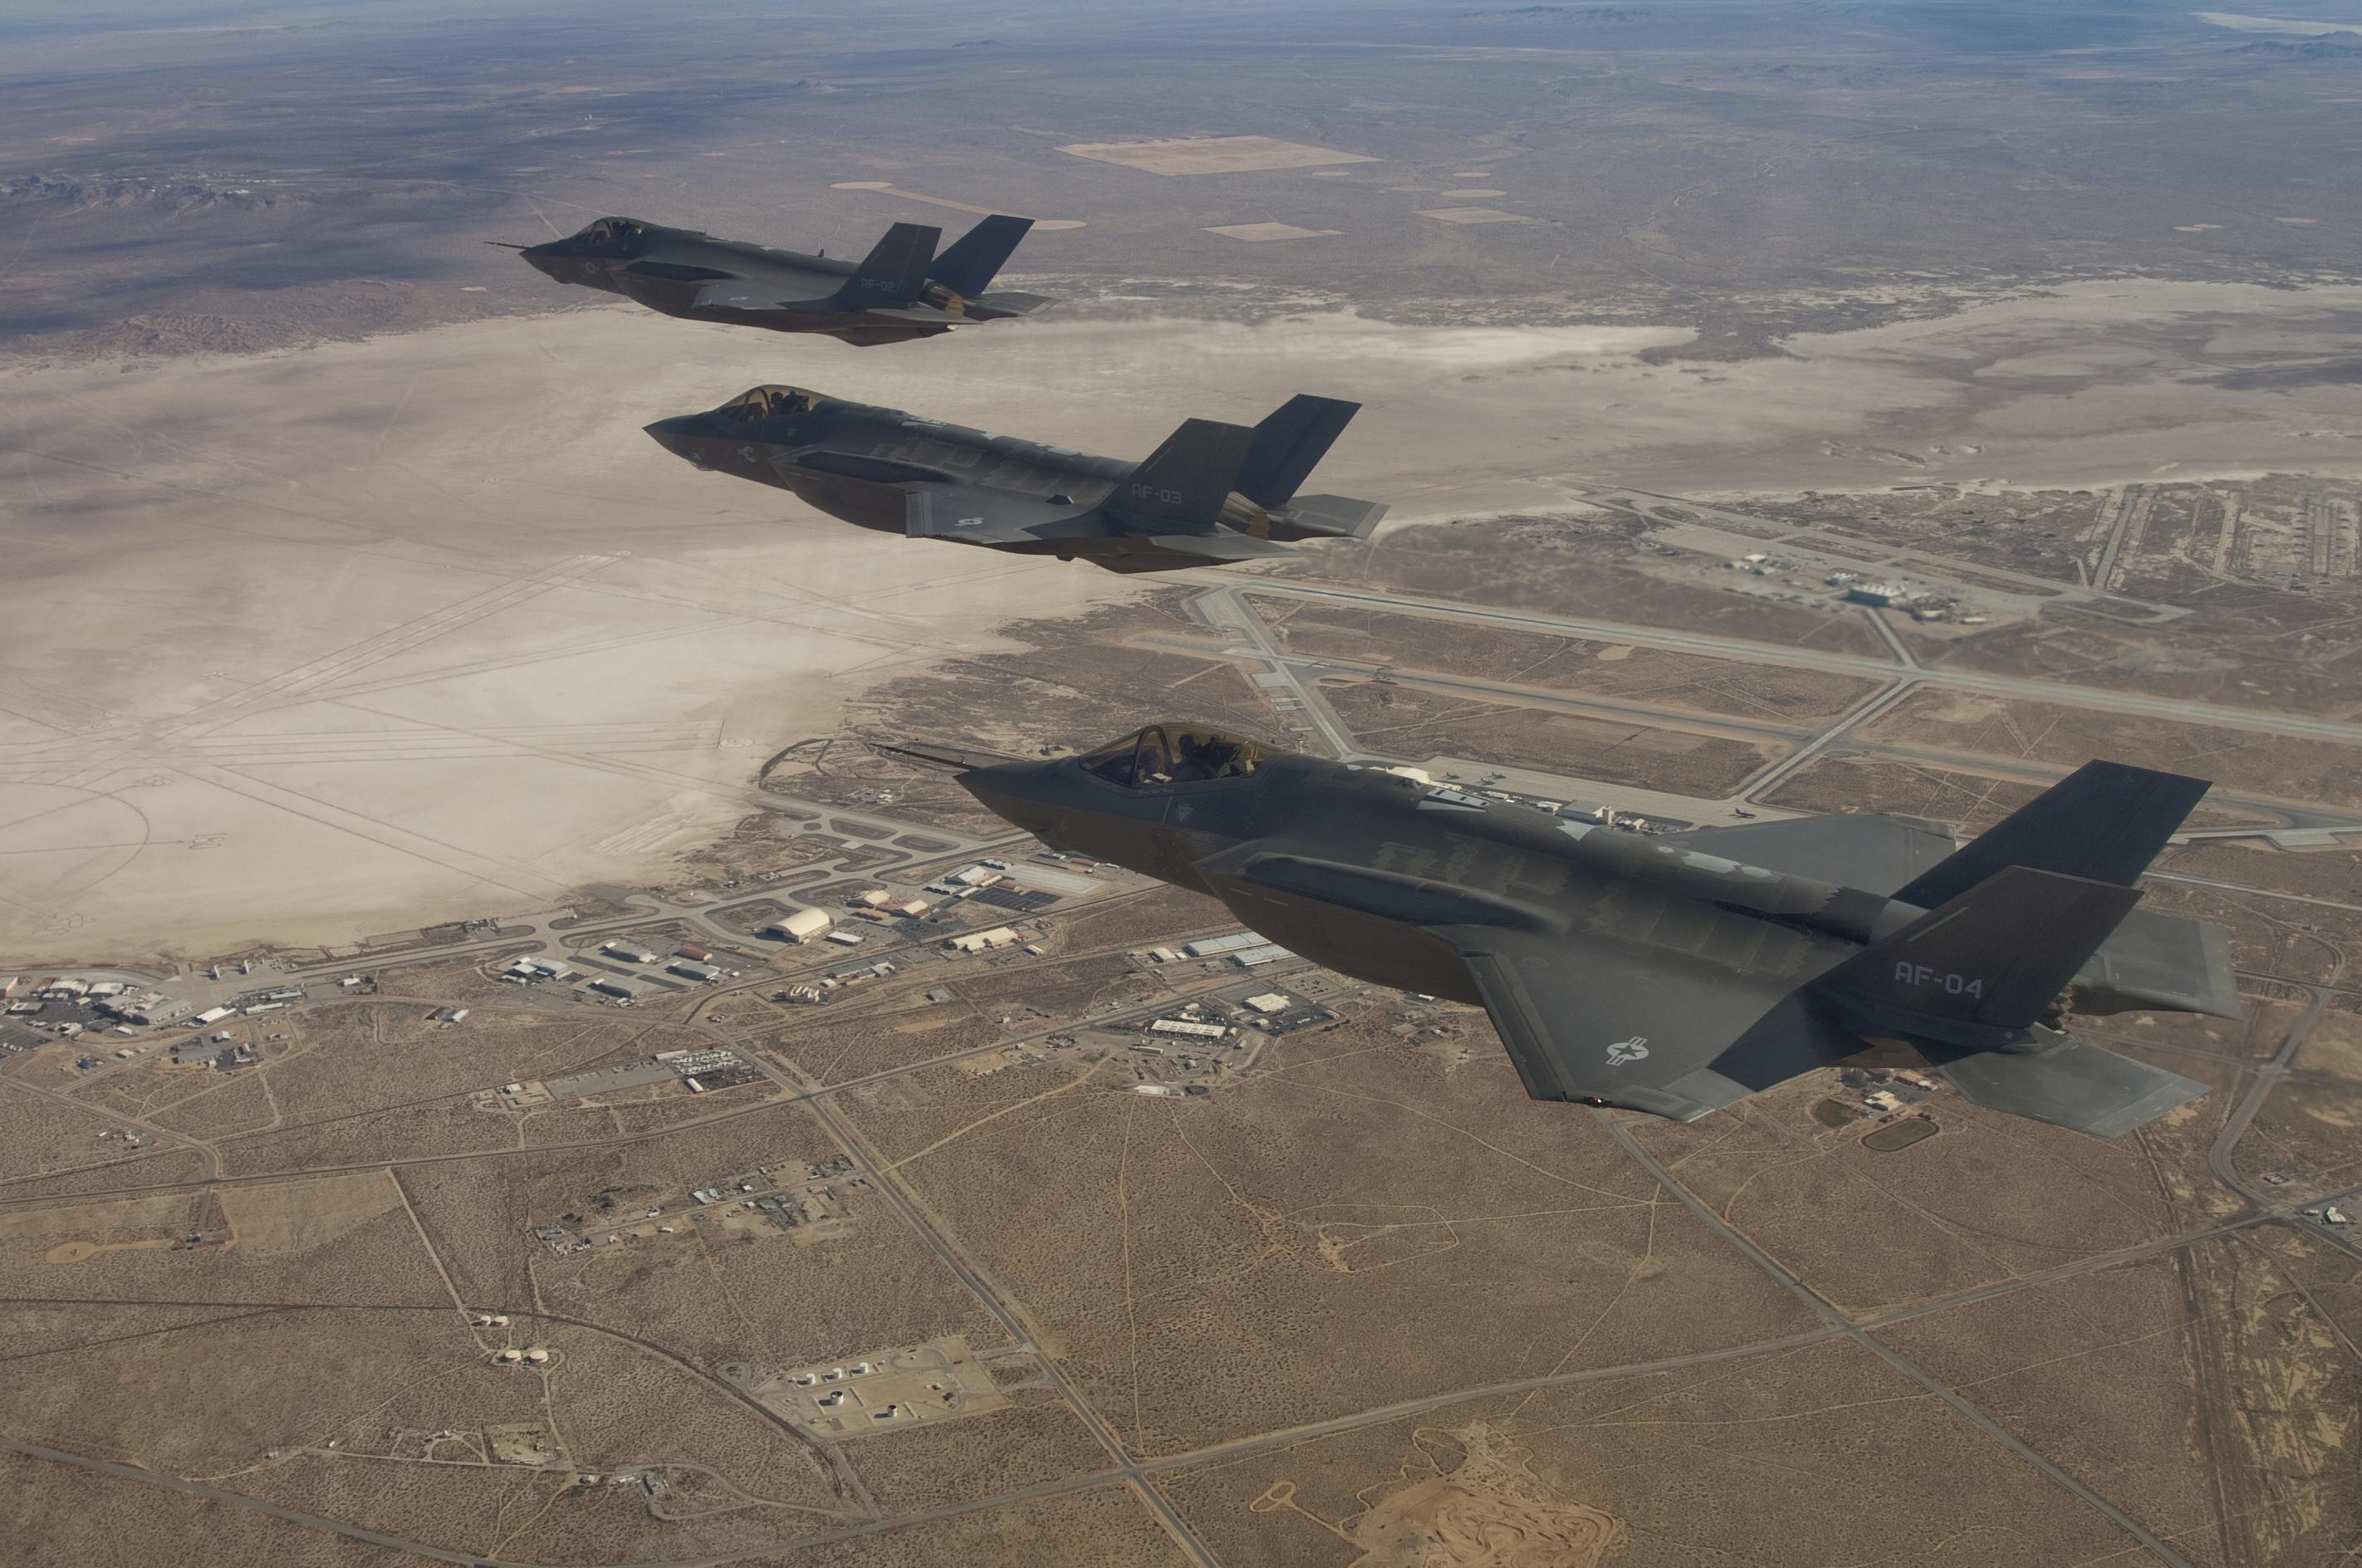 F-35 Joint Strike fighter over Edwards